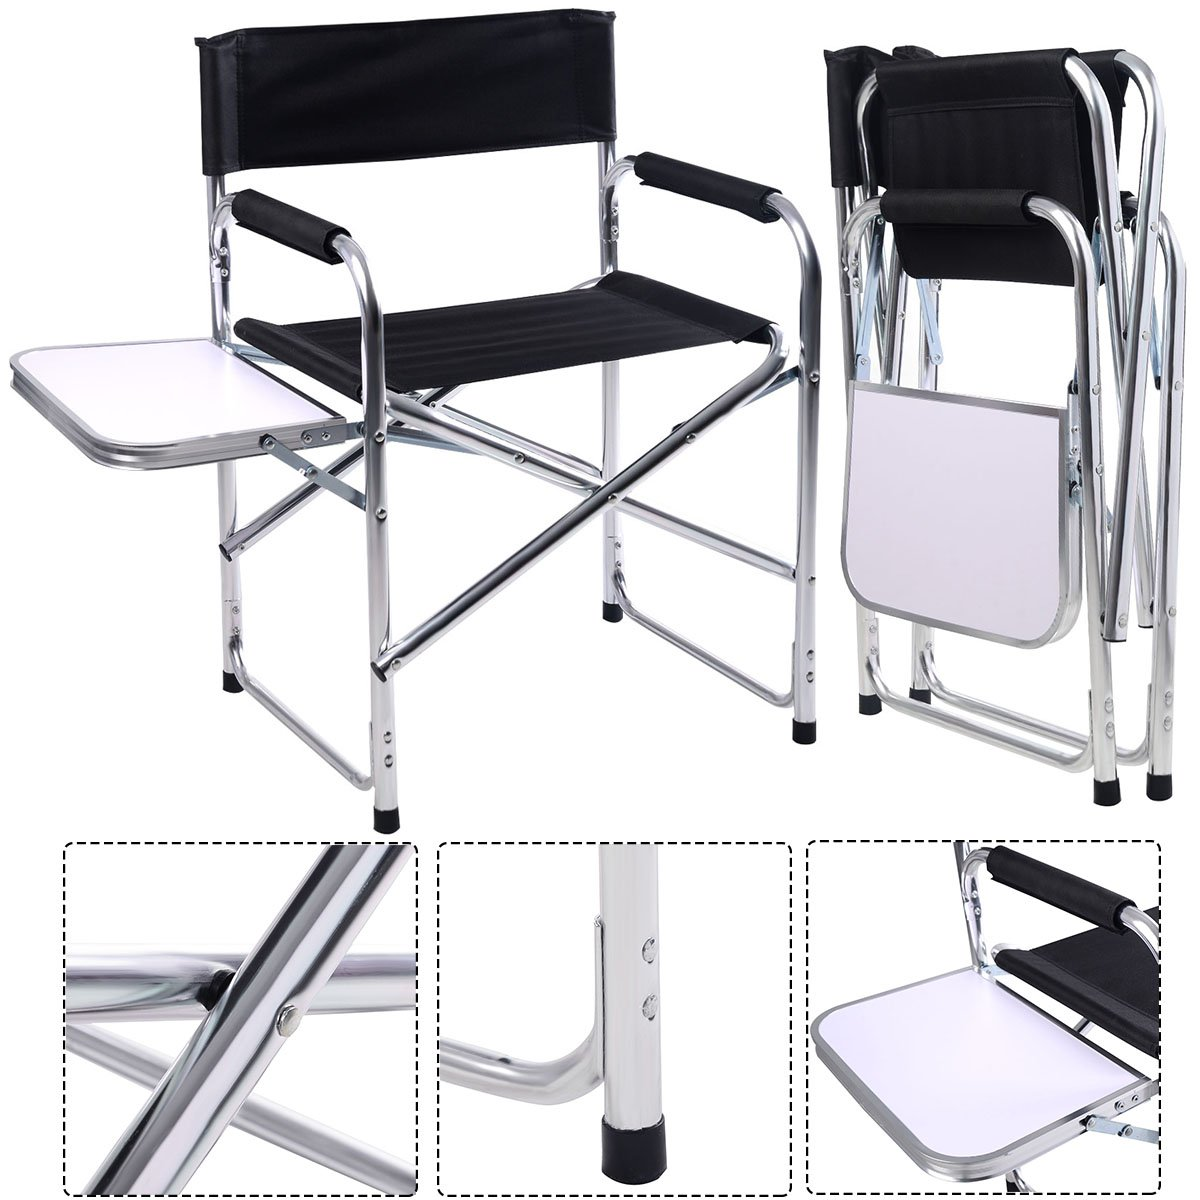 CASART Foldable Aluminum Directors Chair Camping Fishing Garden Chairs w/Table + Arm Rest